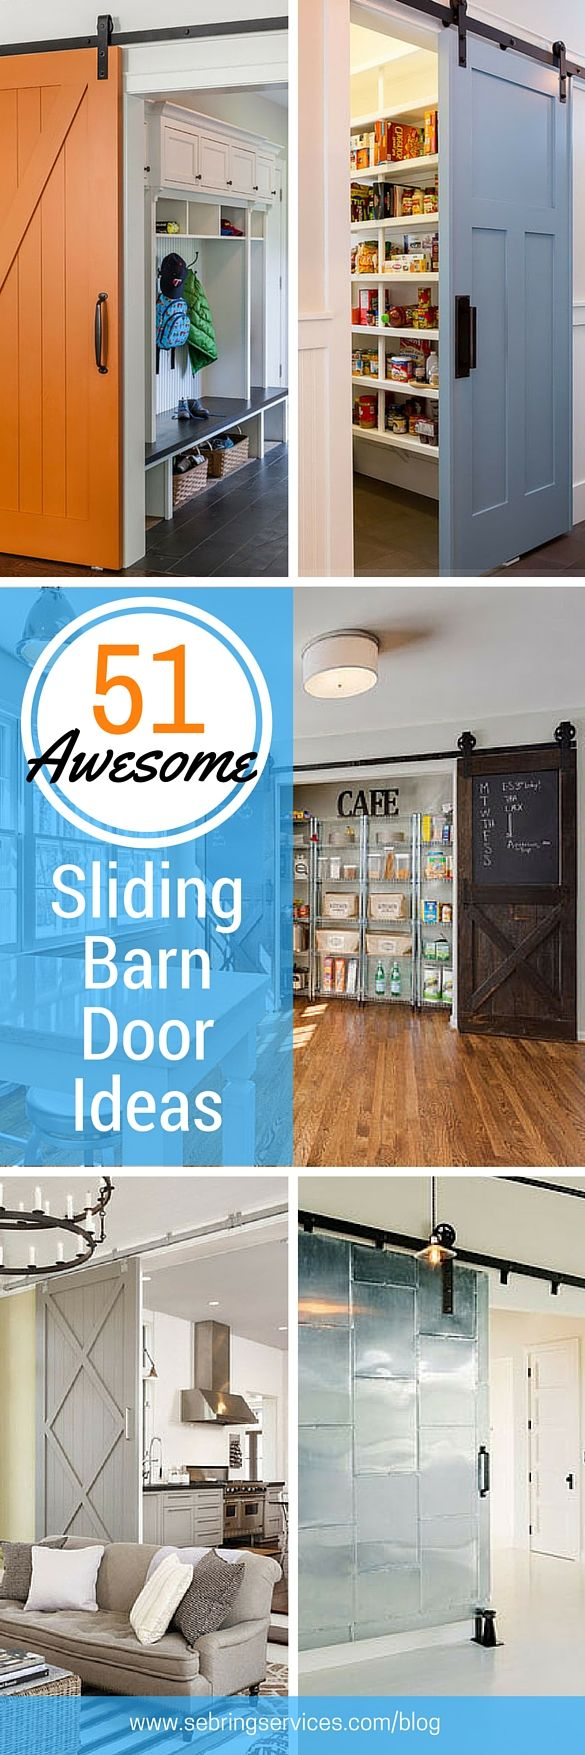 51 awesome sliding barn door ideas sliding doors for Barn doors for home office